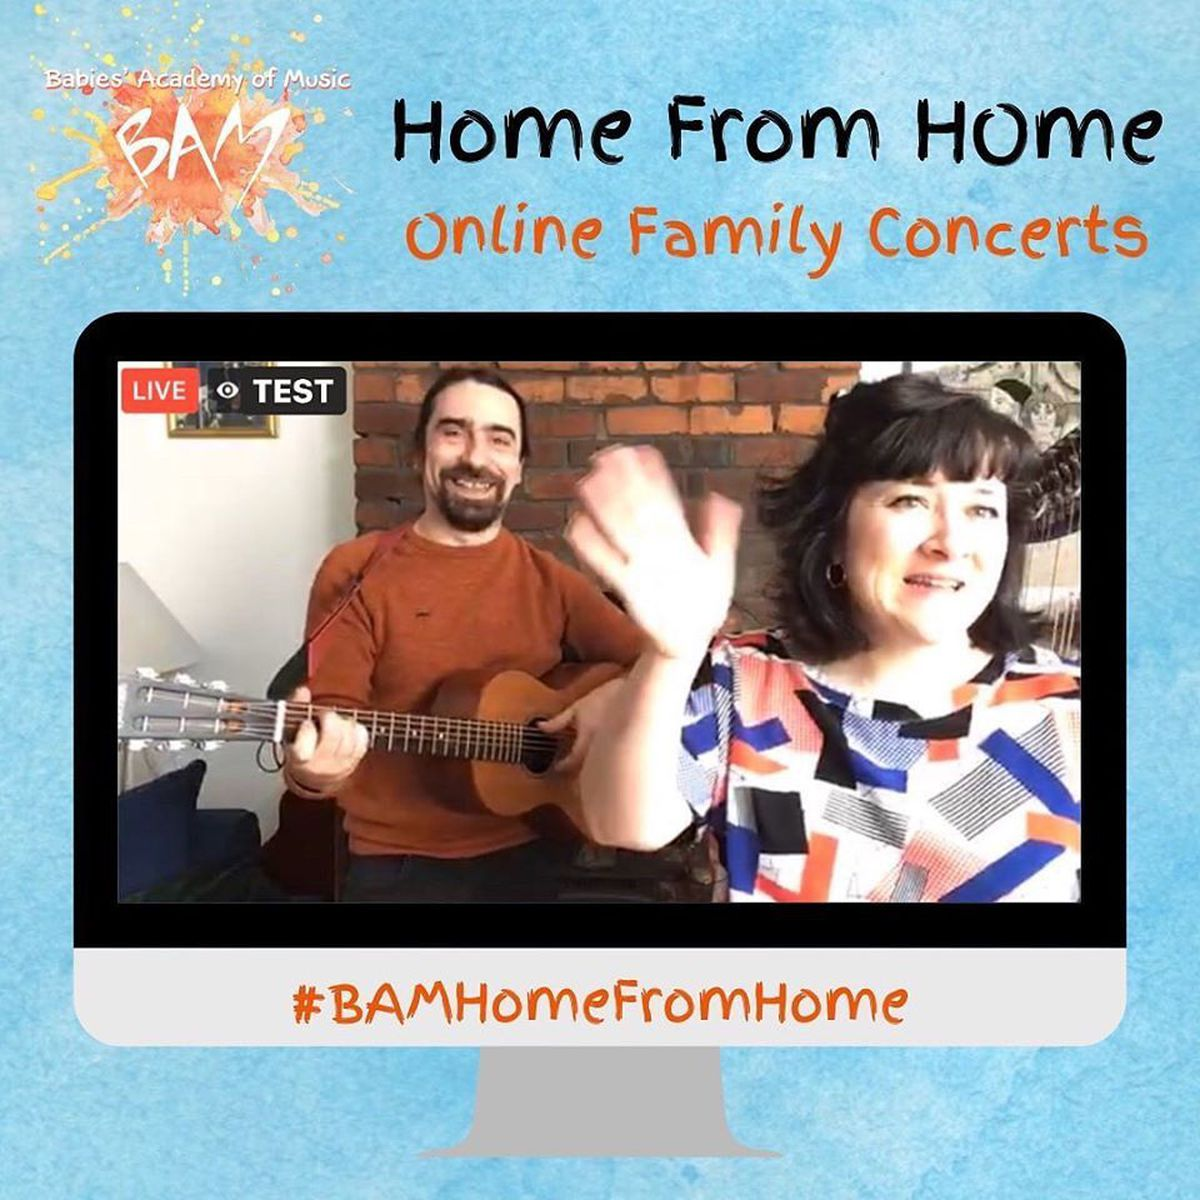 A test broadcast ahead of the BAM from home concert